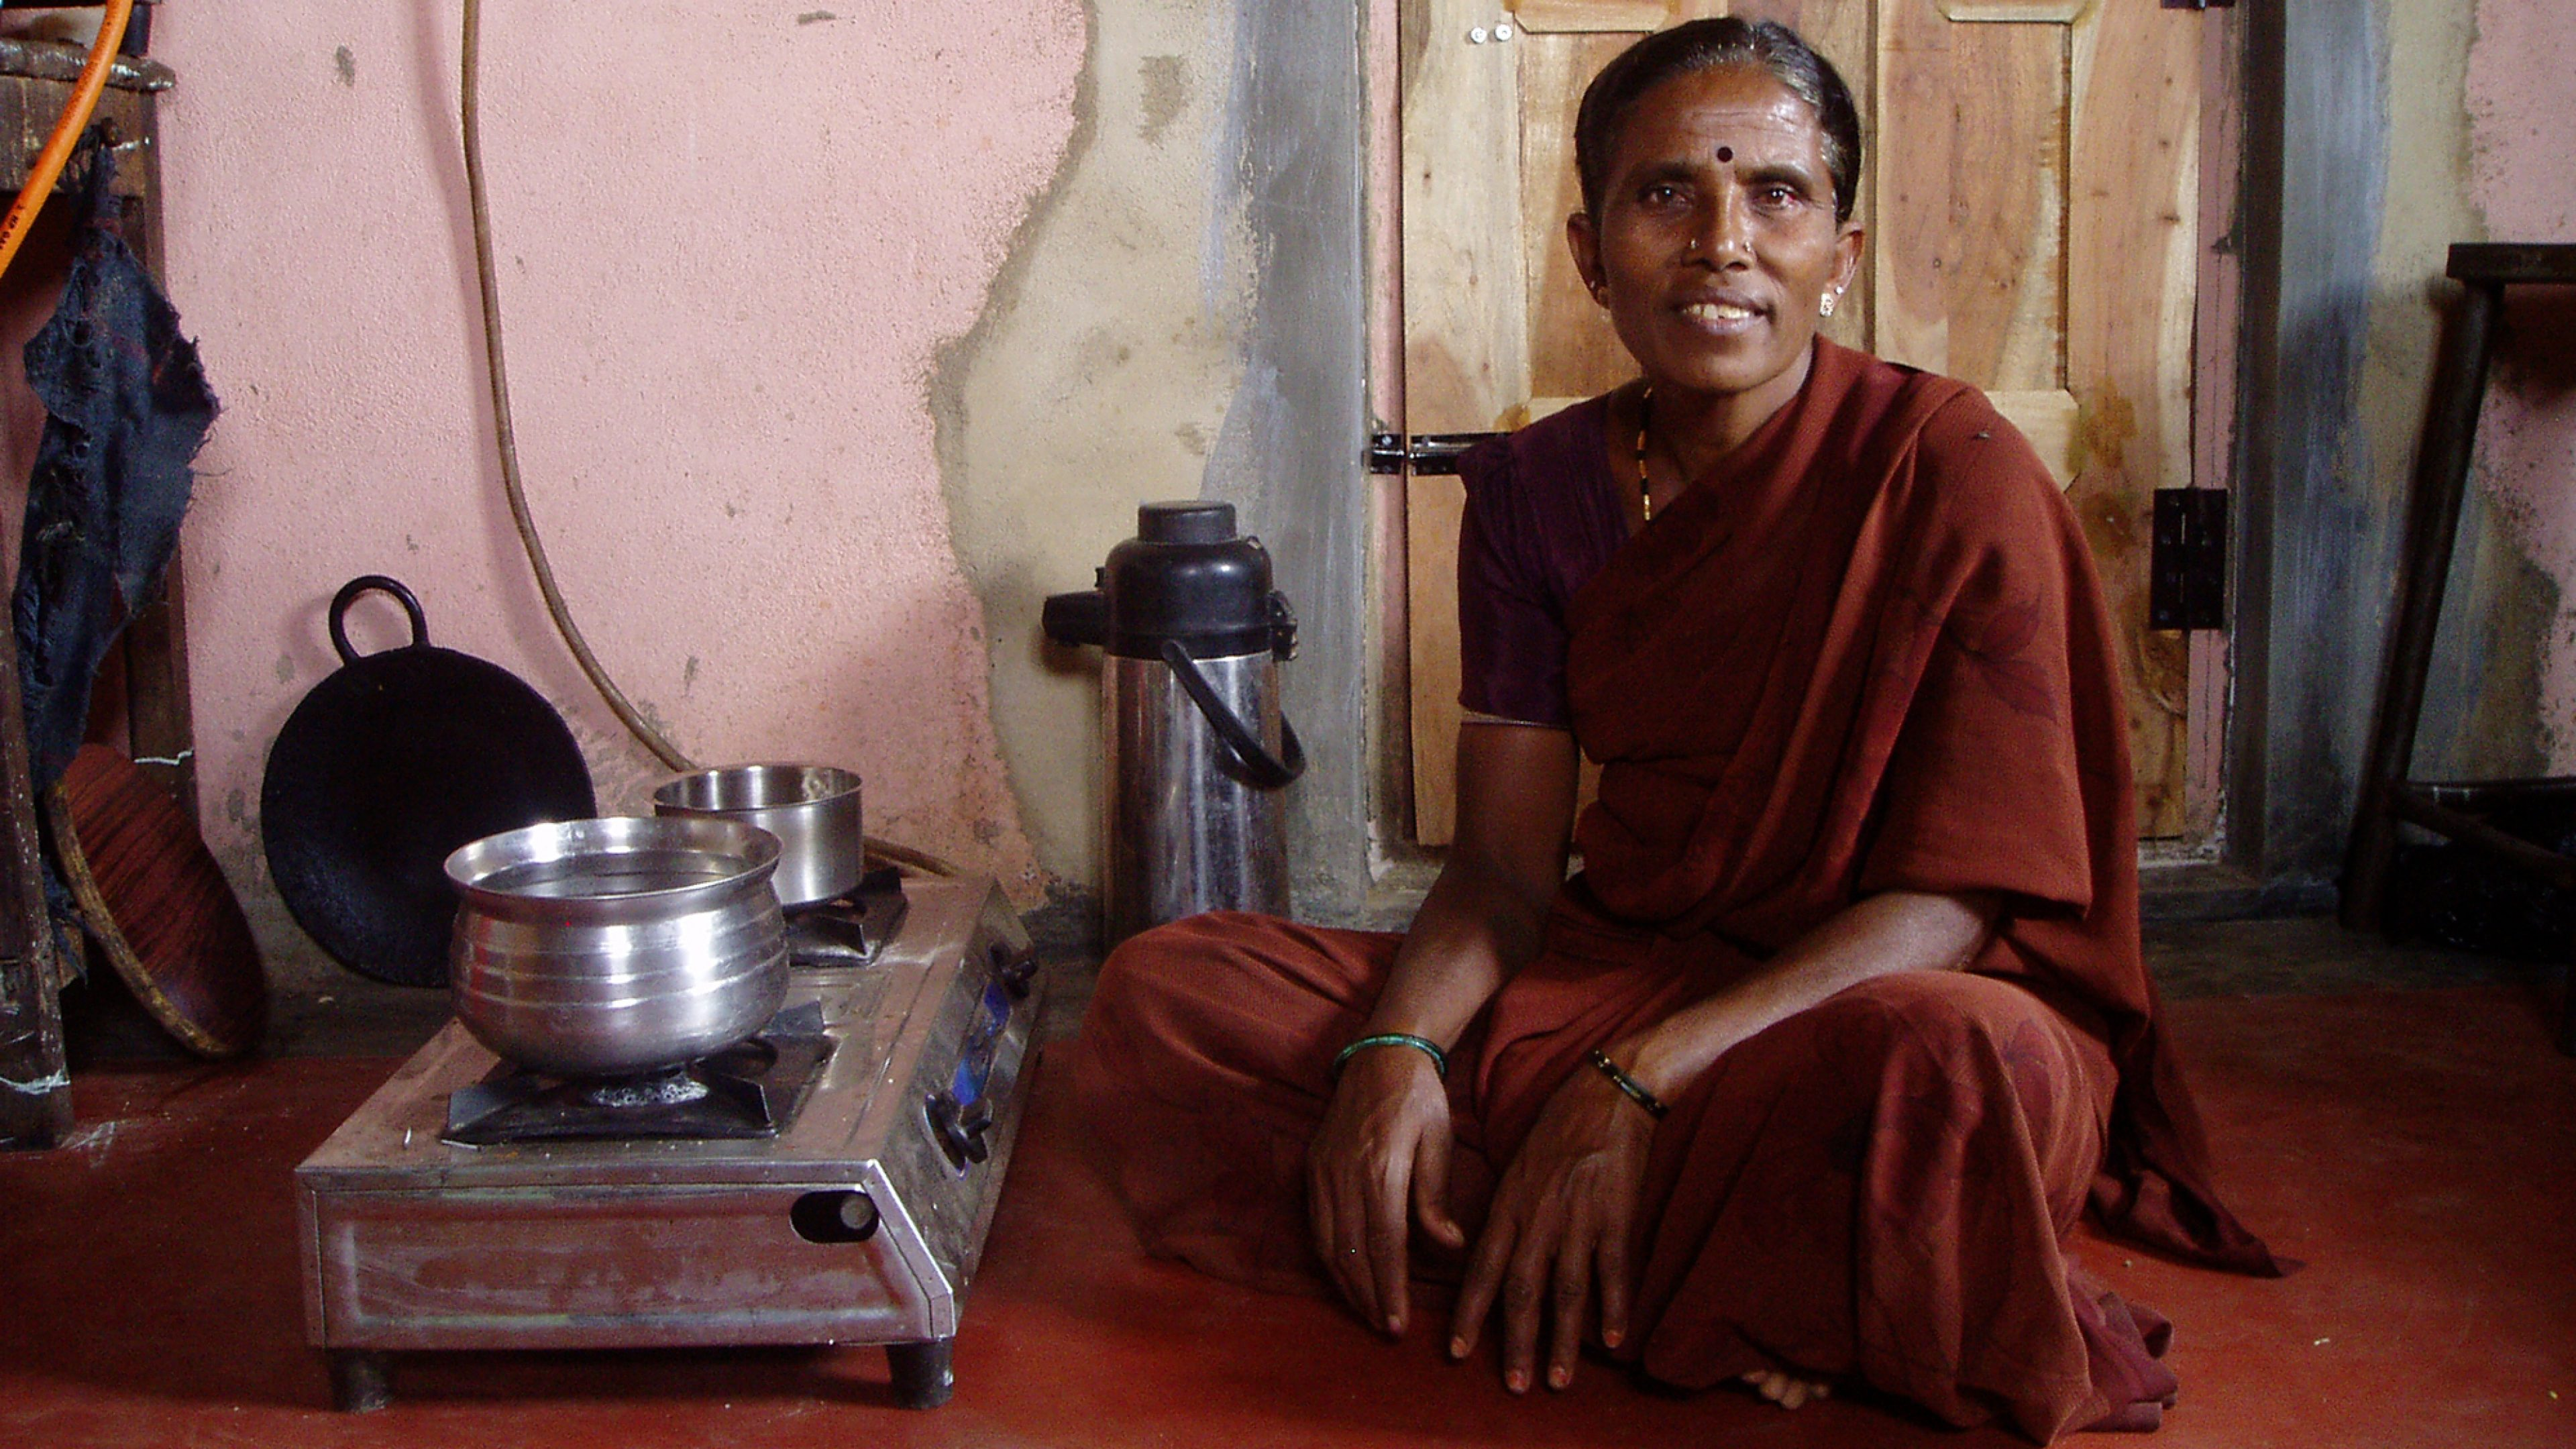 Household in the Bagepalli Coolie Sangha –biogas project